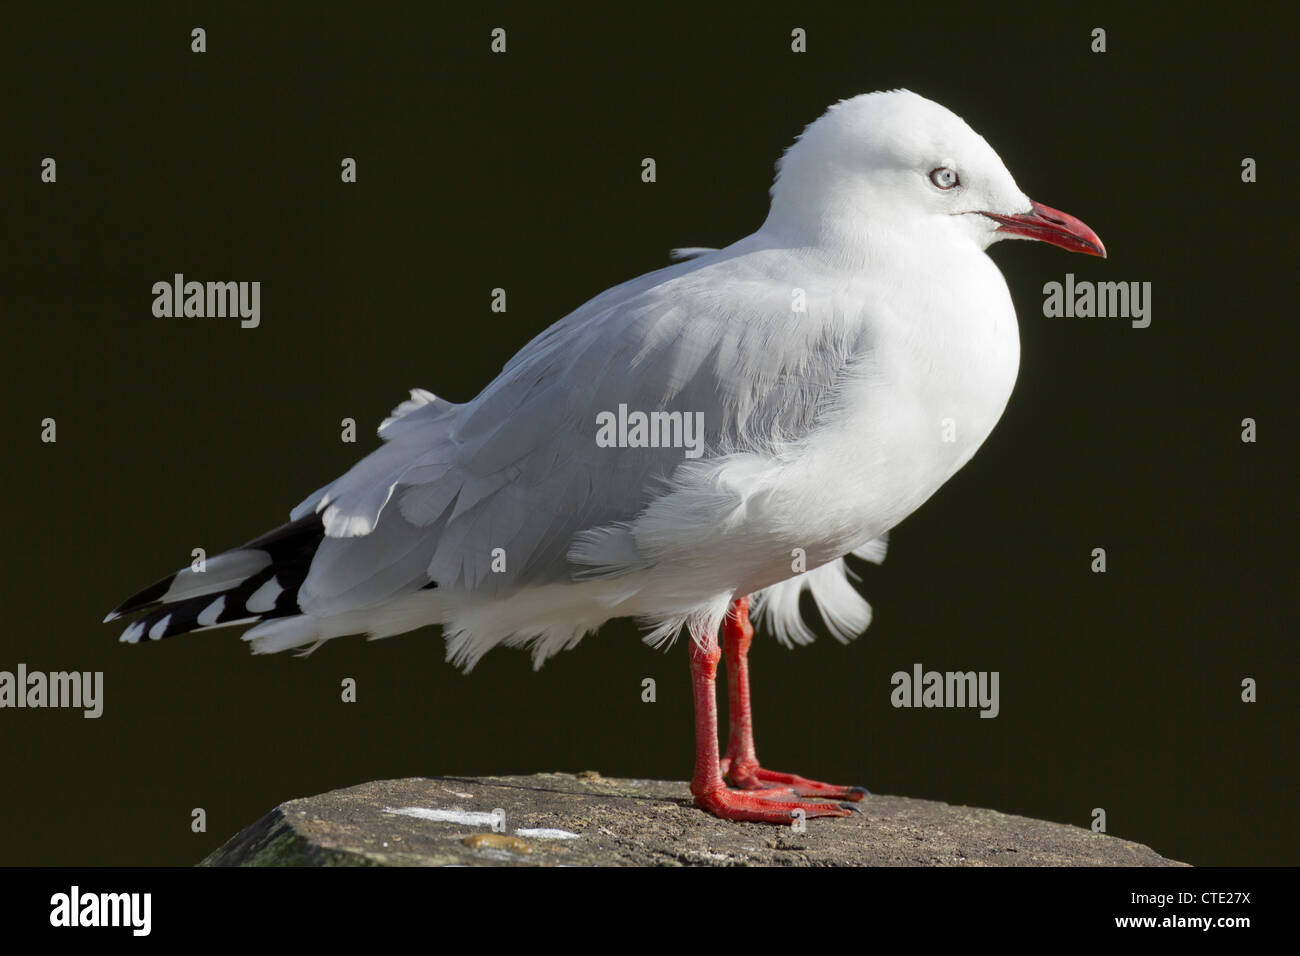 Red-billed seagull at Whangarei, New Zealand - Stock Image